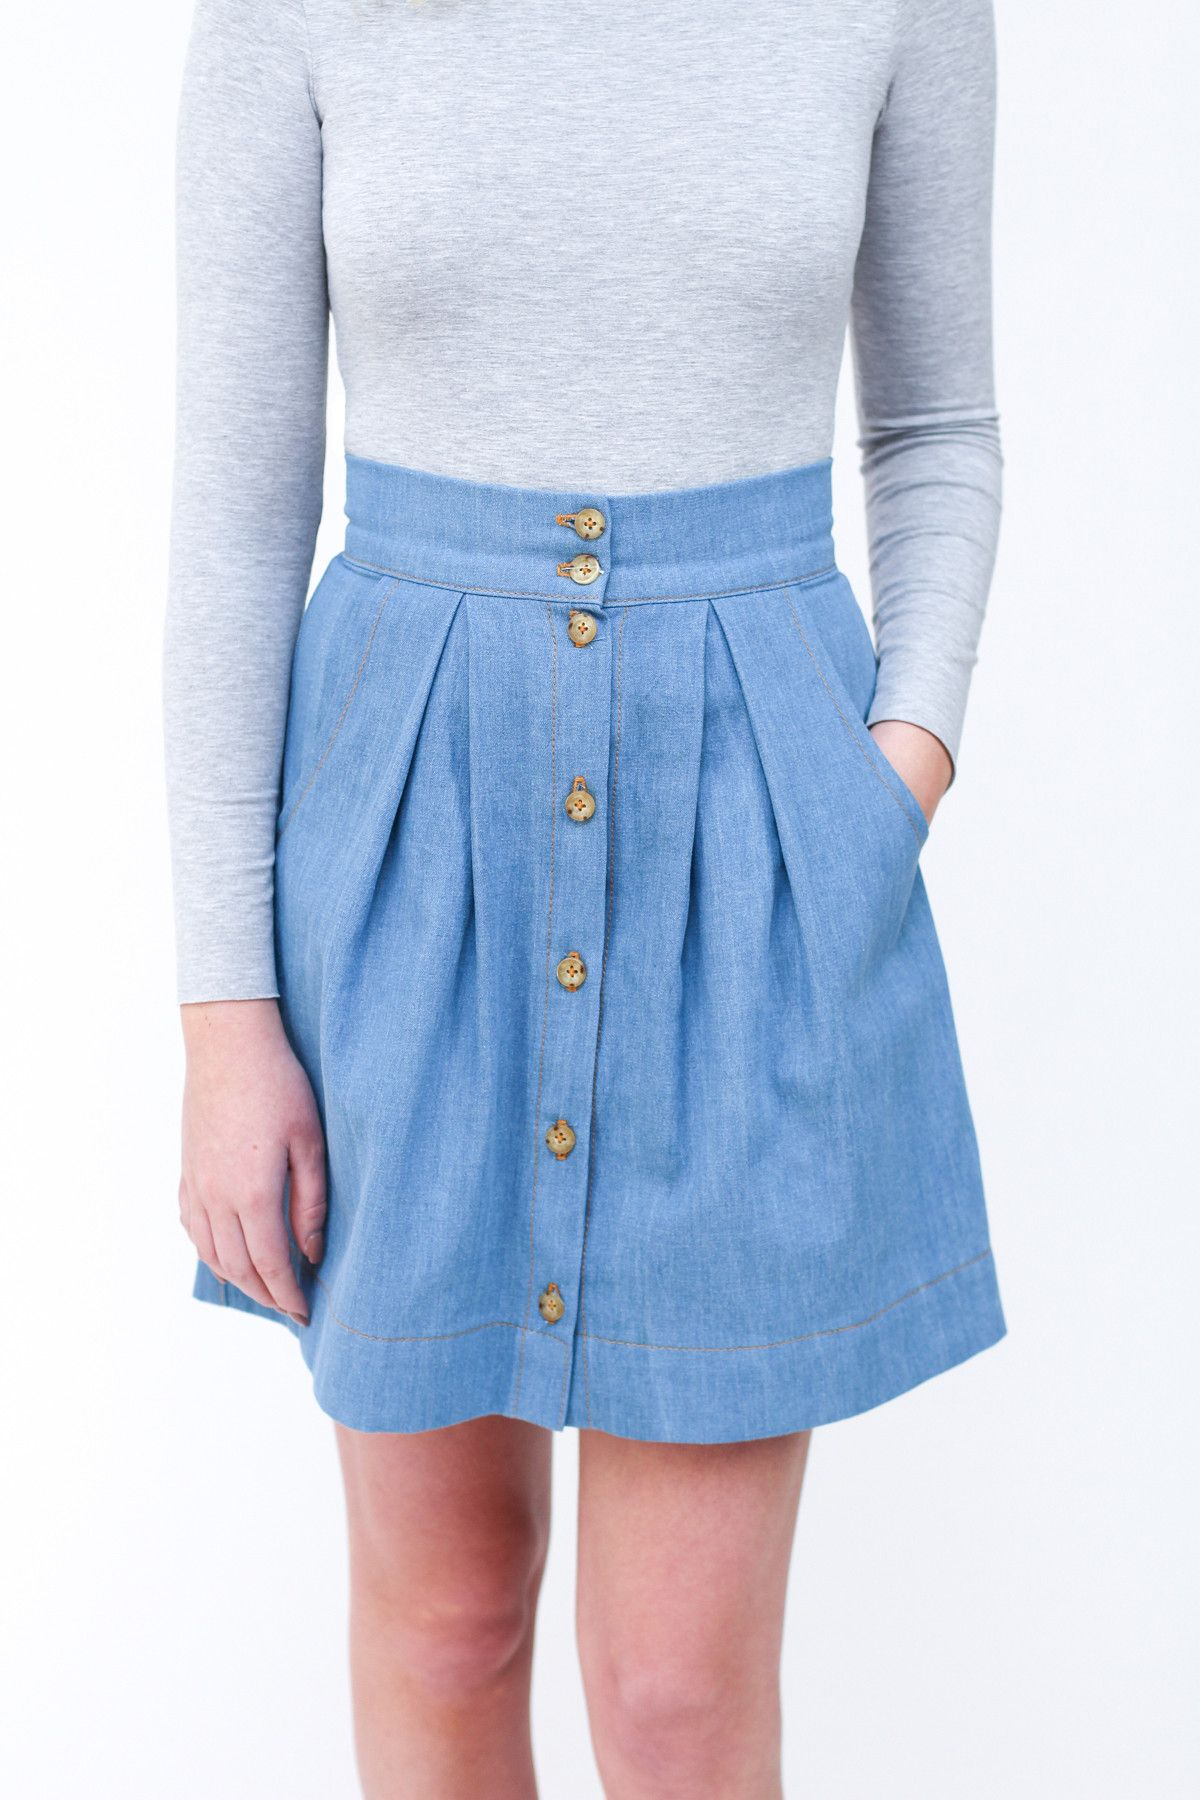 Kelly skirt sewing pattern | Pinterest | Pocket pattern, Sewing ...